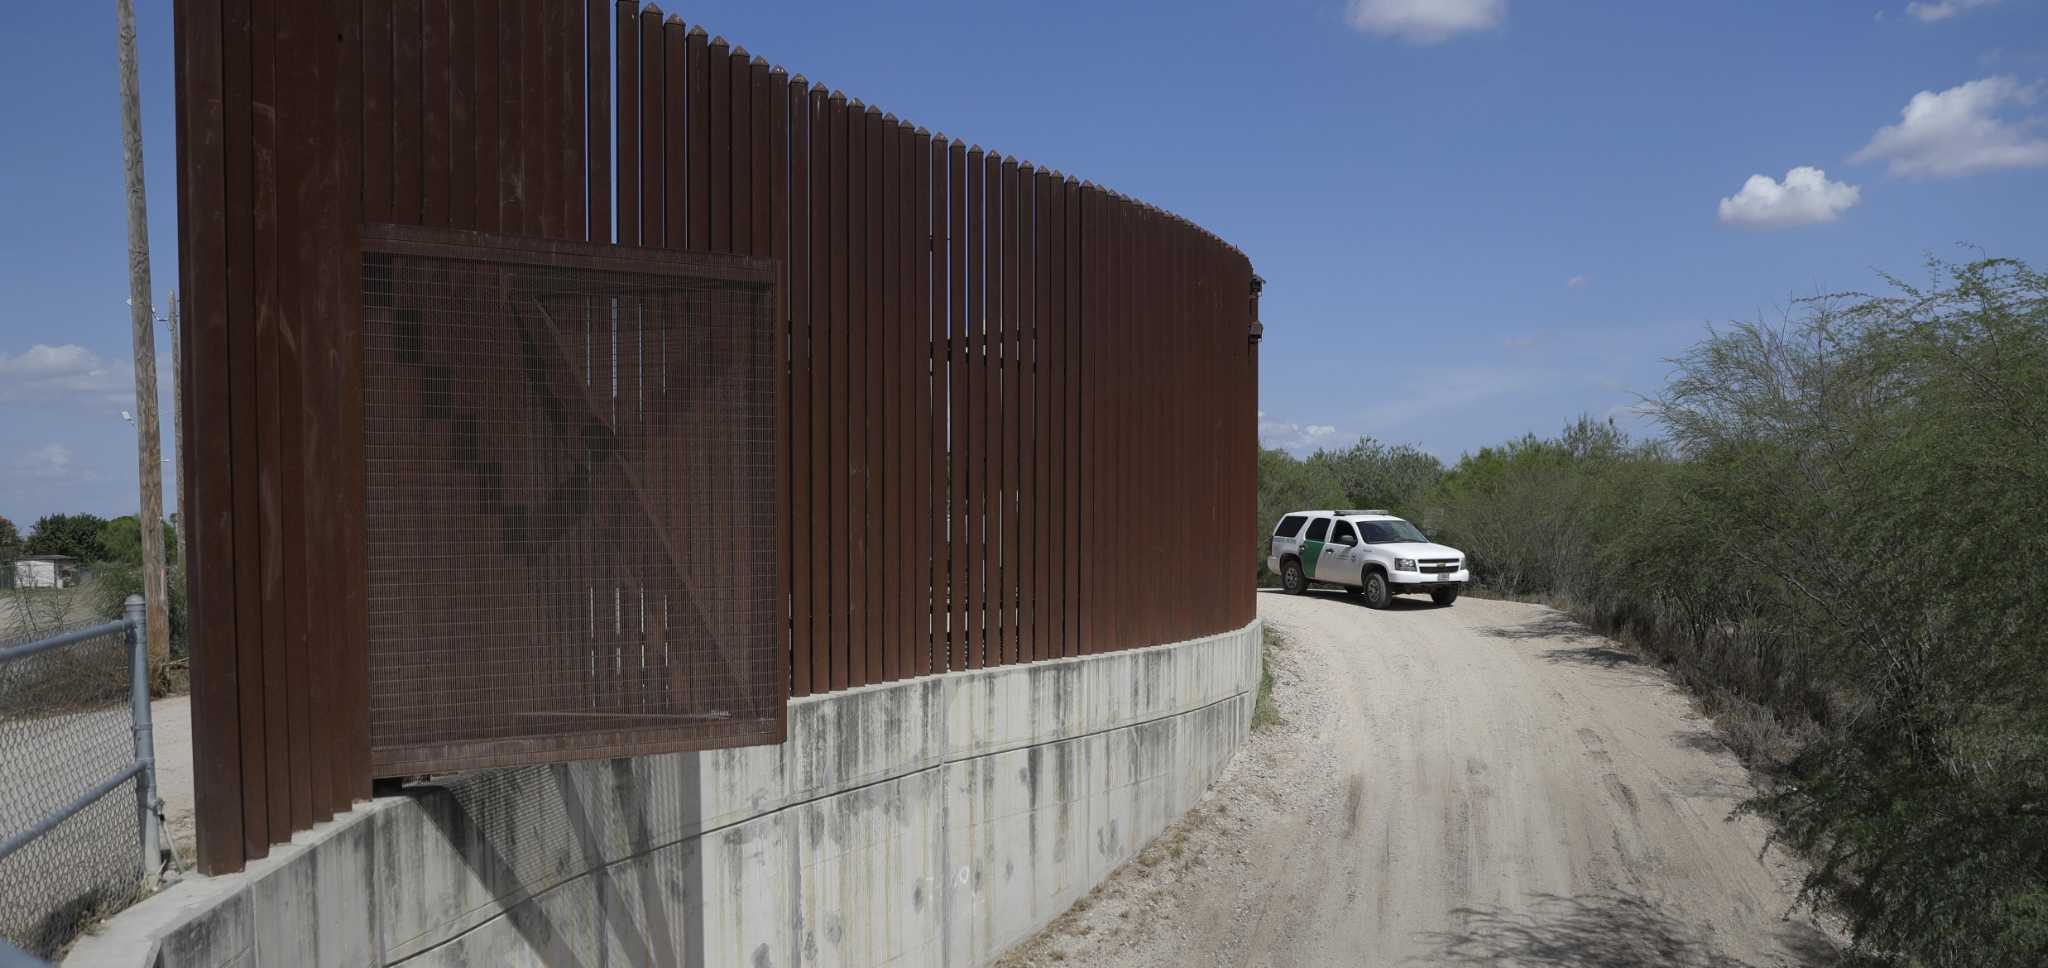 52 miles of border wall set to be built in northwest Webb County after military funds diverted